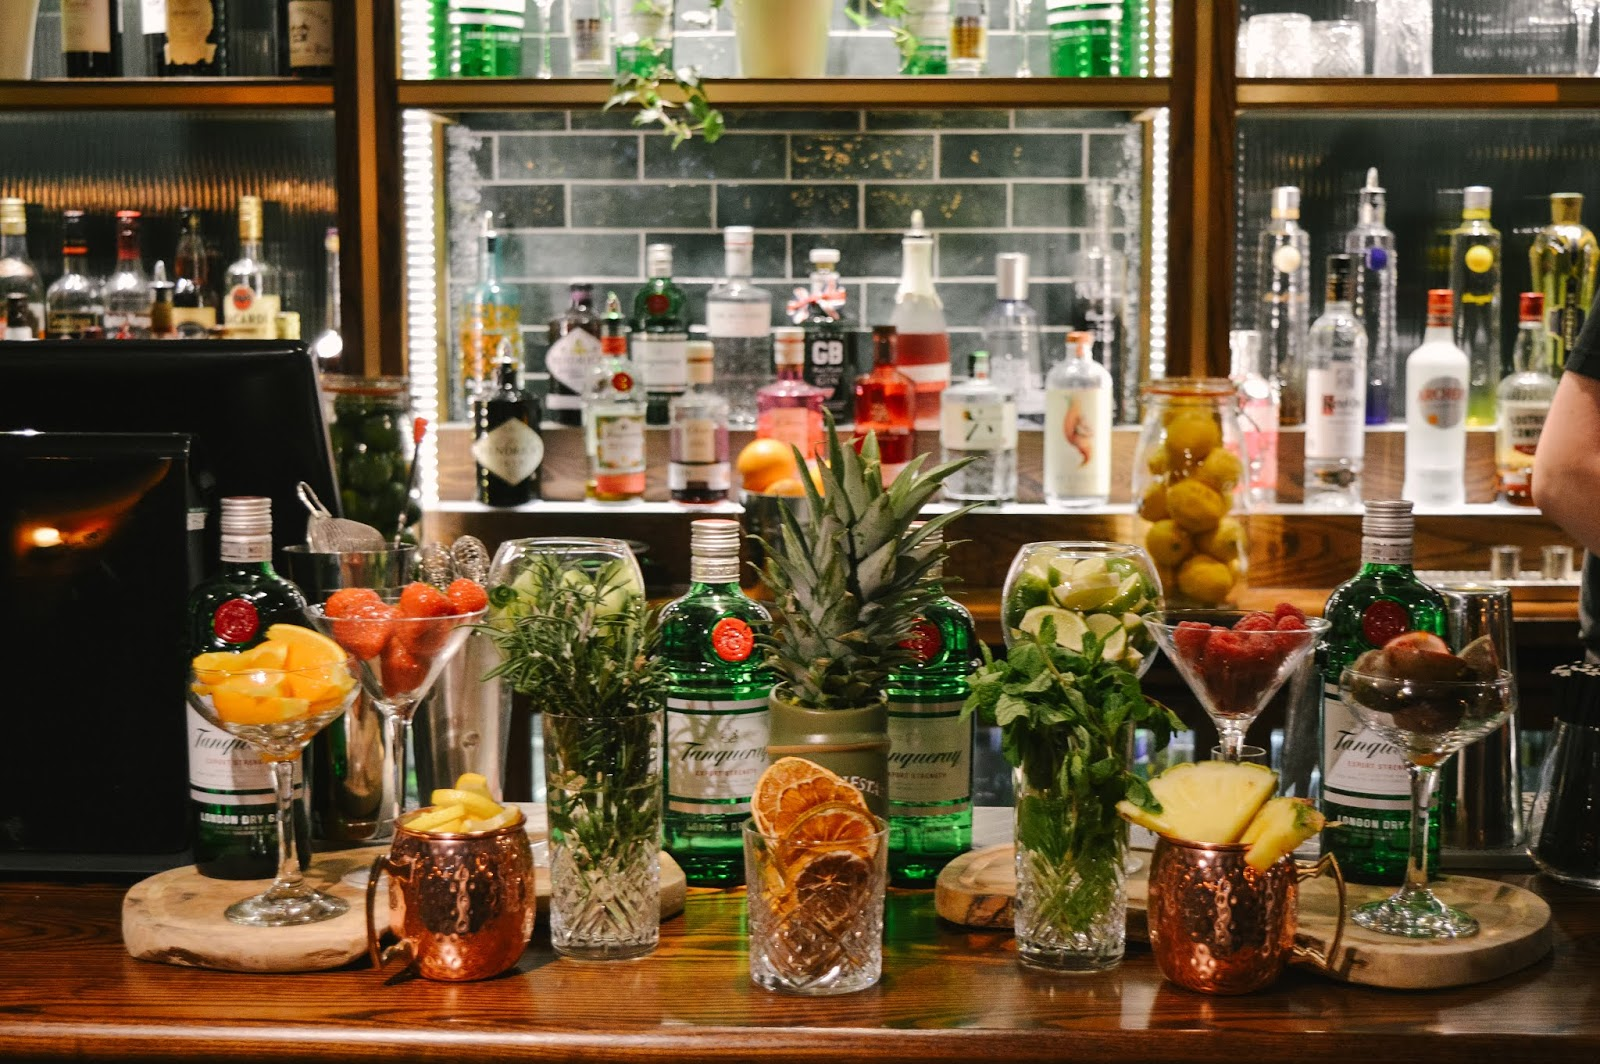 Make Your Own Gin Bar at The Old Forge in Otterbourne